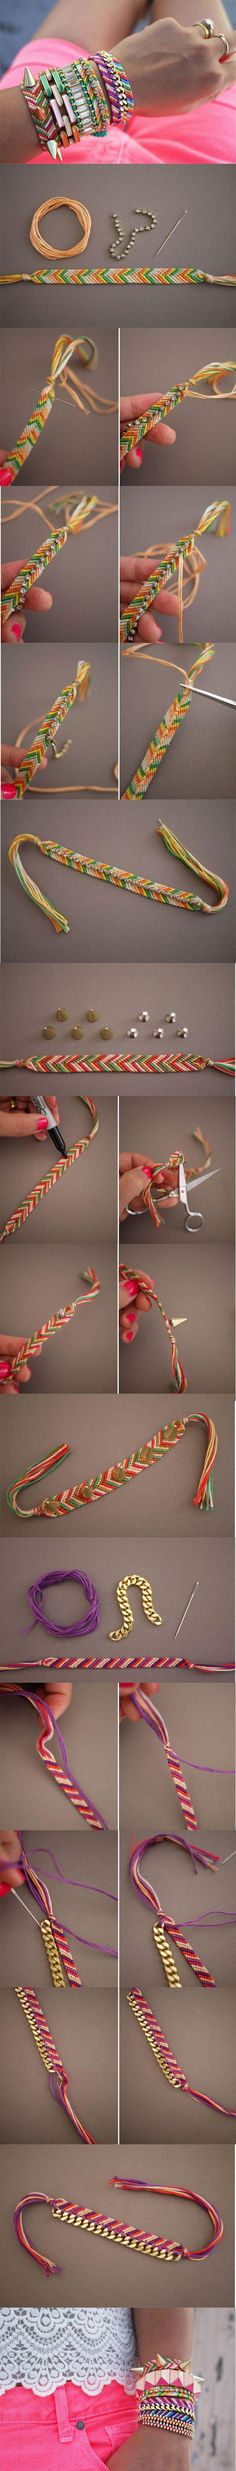 Friendship bracelets with metal touches